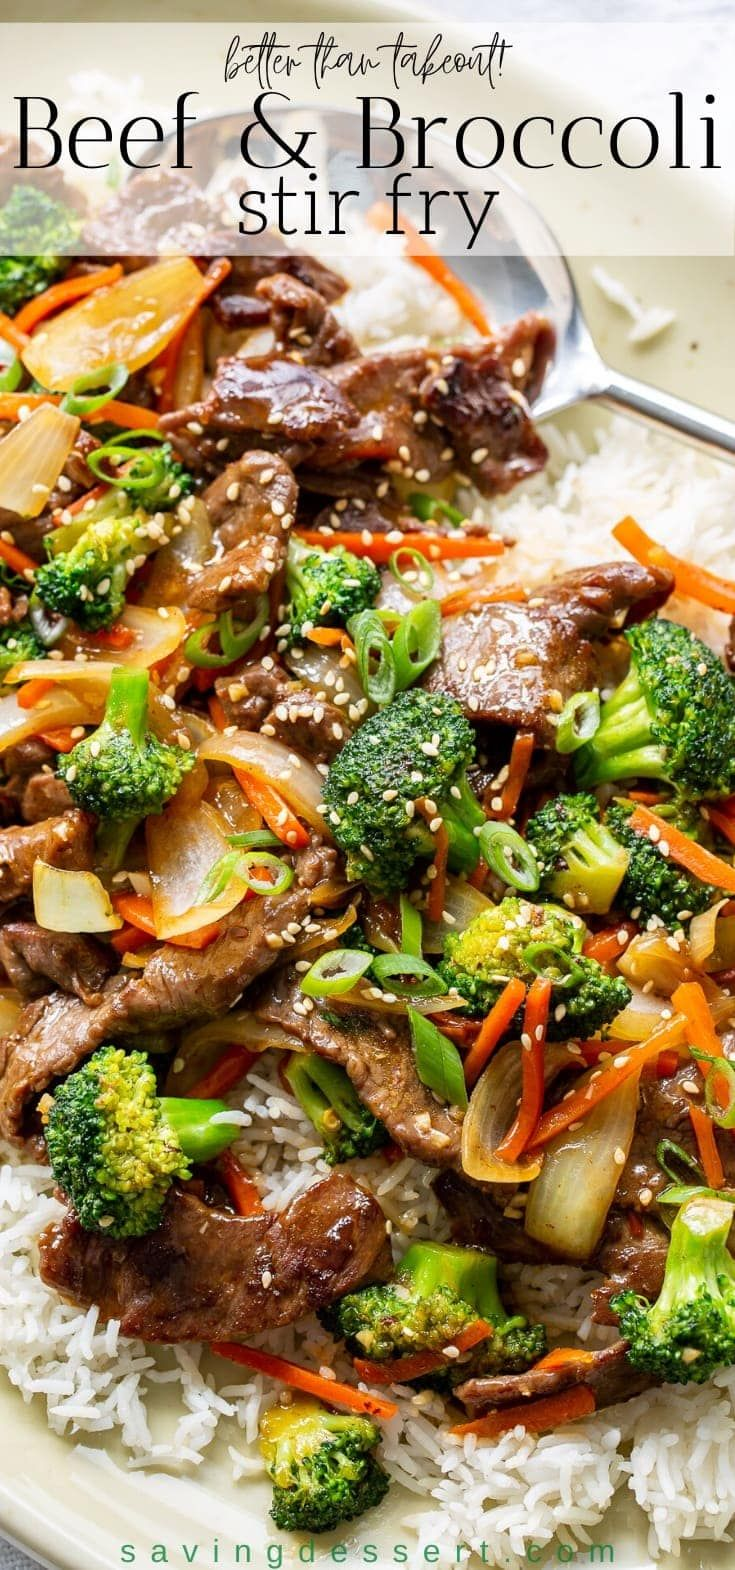 Photo of Beef and Broccoli Stir-Fry